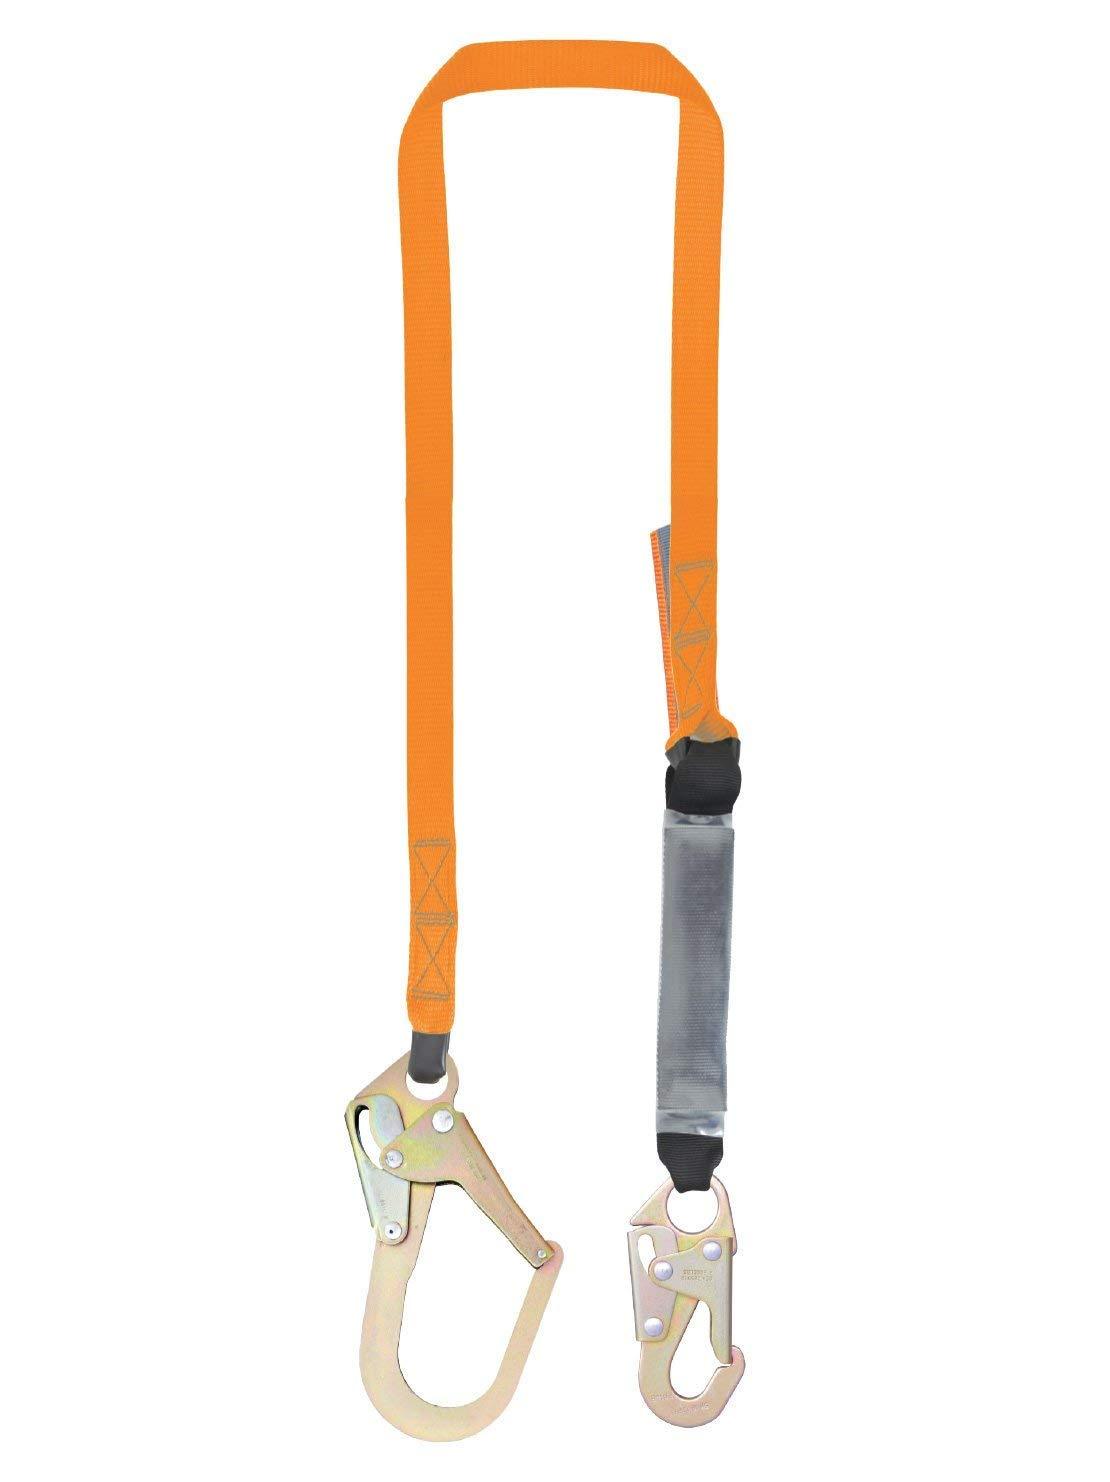 6 Foot Single Leg External Shock Absorbing Lanyard with 1 Peri Form Hook and 1 Steel Snap Hook, OSHA/ANSI Compliant